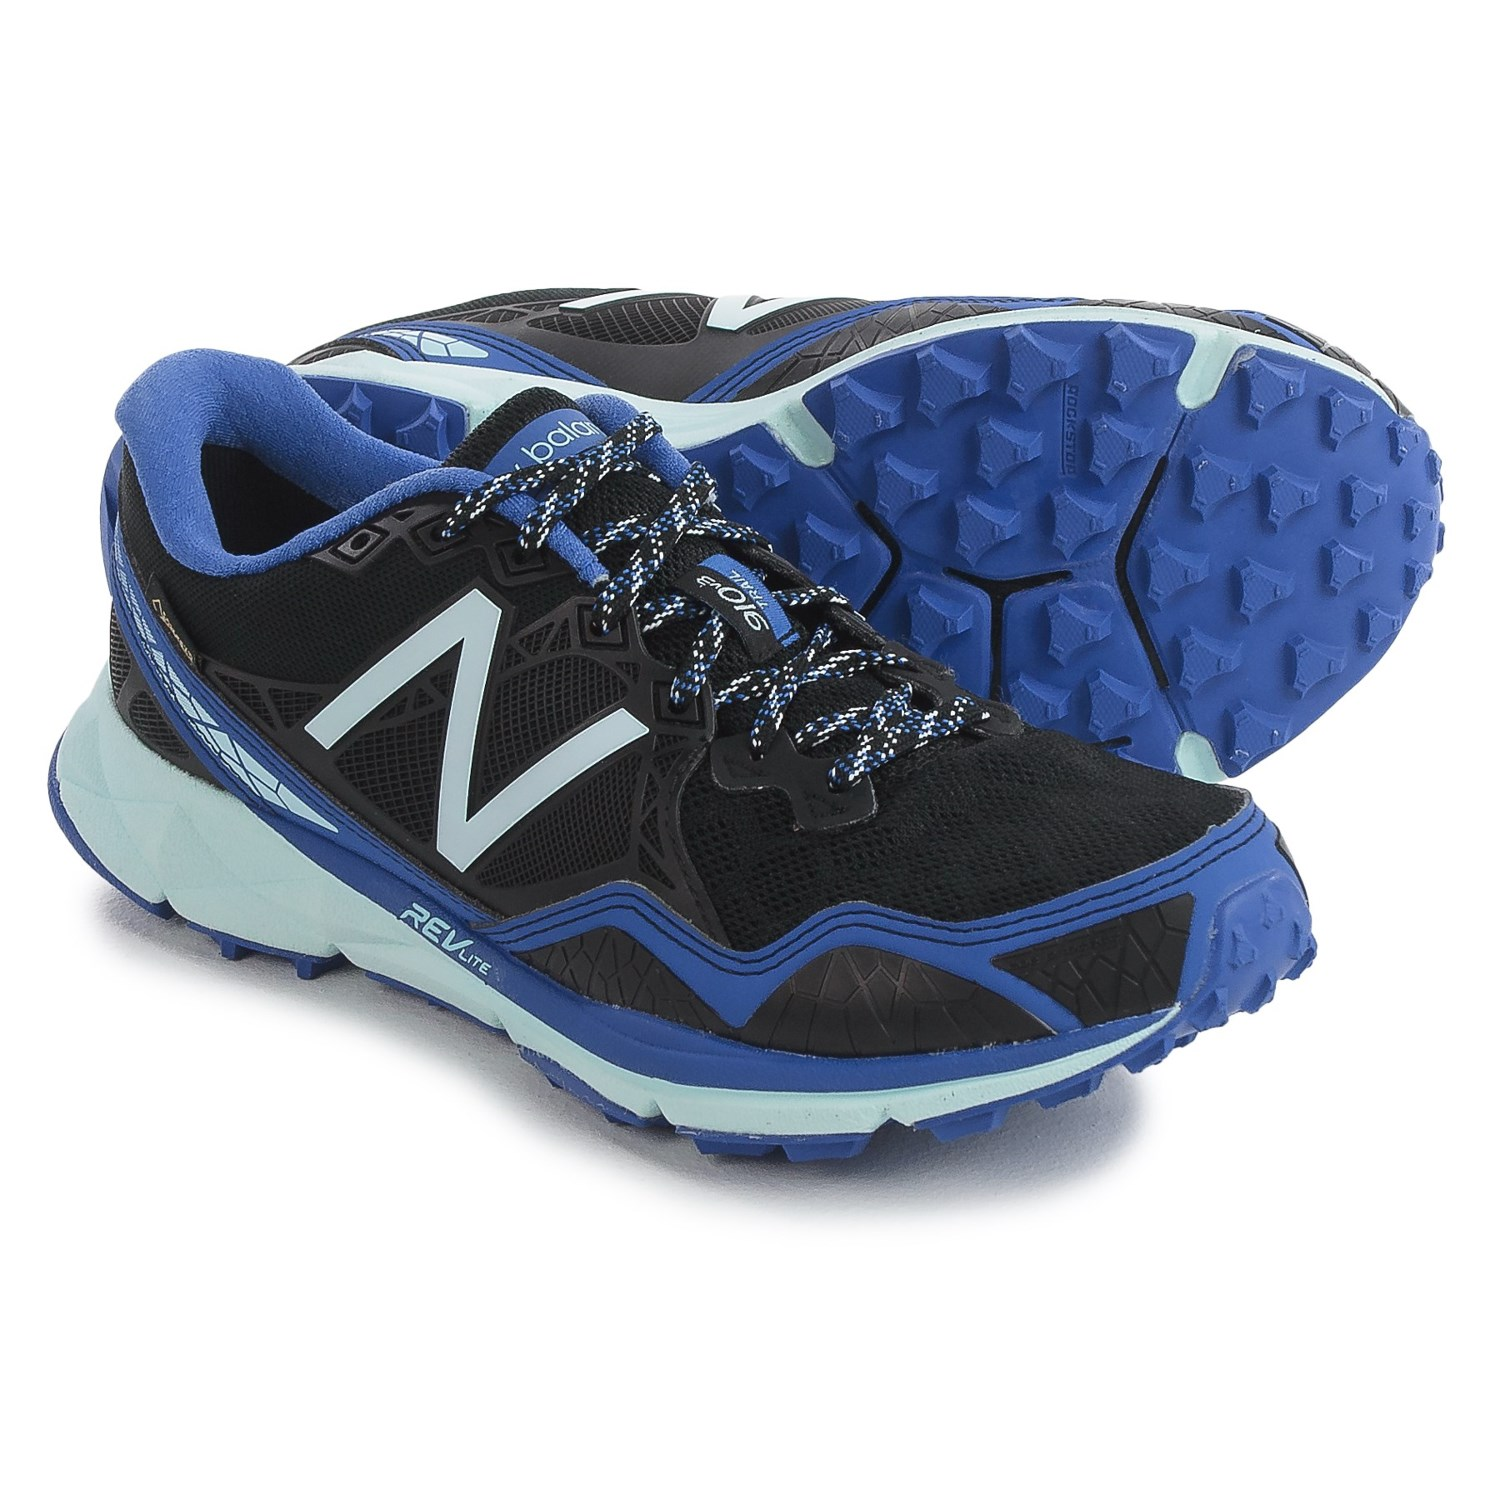 New Balance MT910V3 Gore-Tex® Trail Running Shoes - Waterproof (For Women)